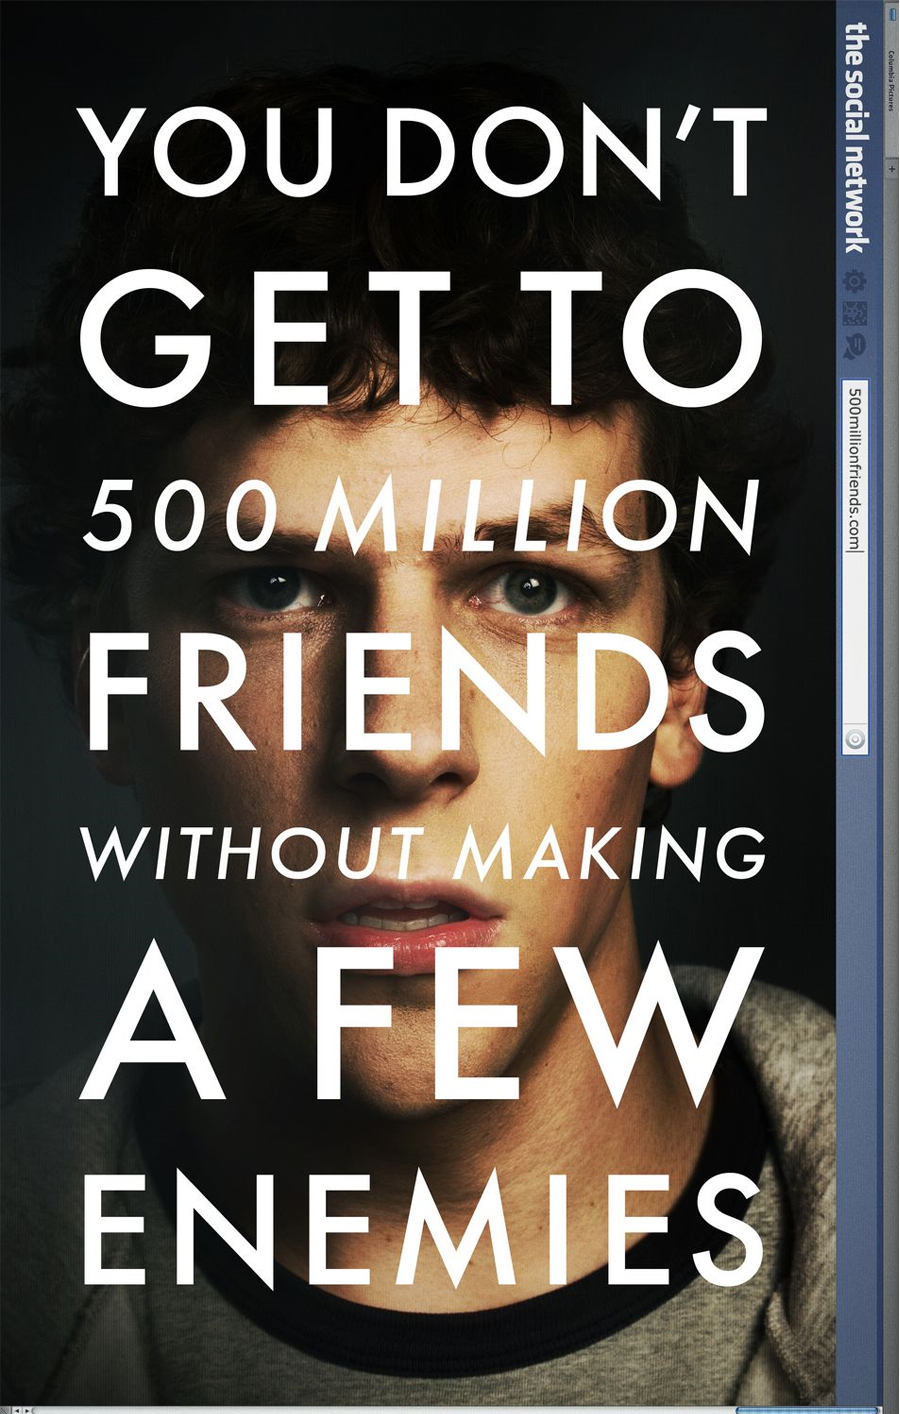 Poster from the film, The Social Network